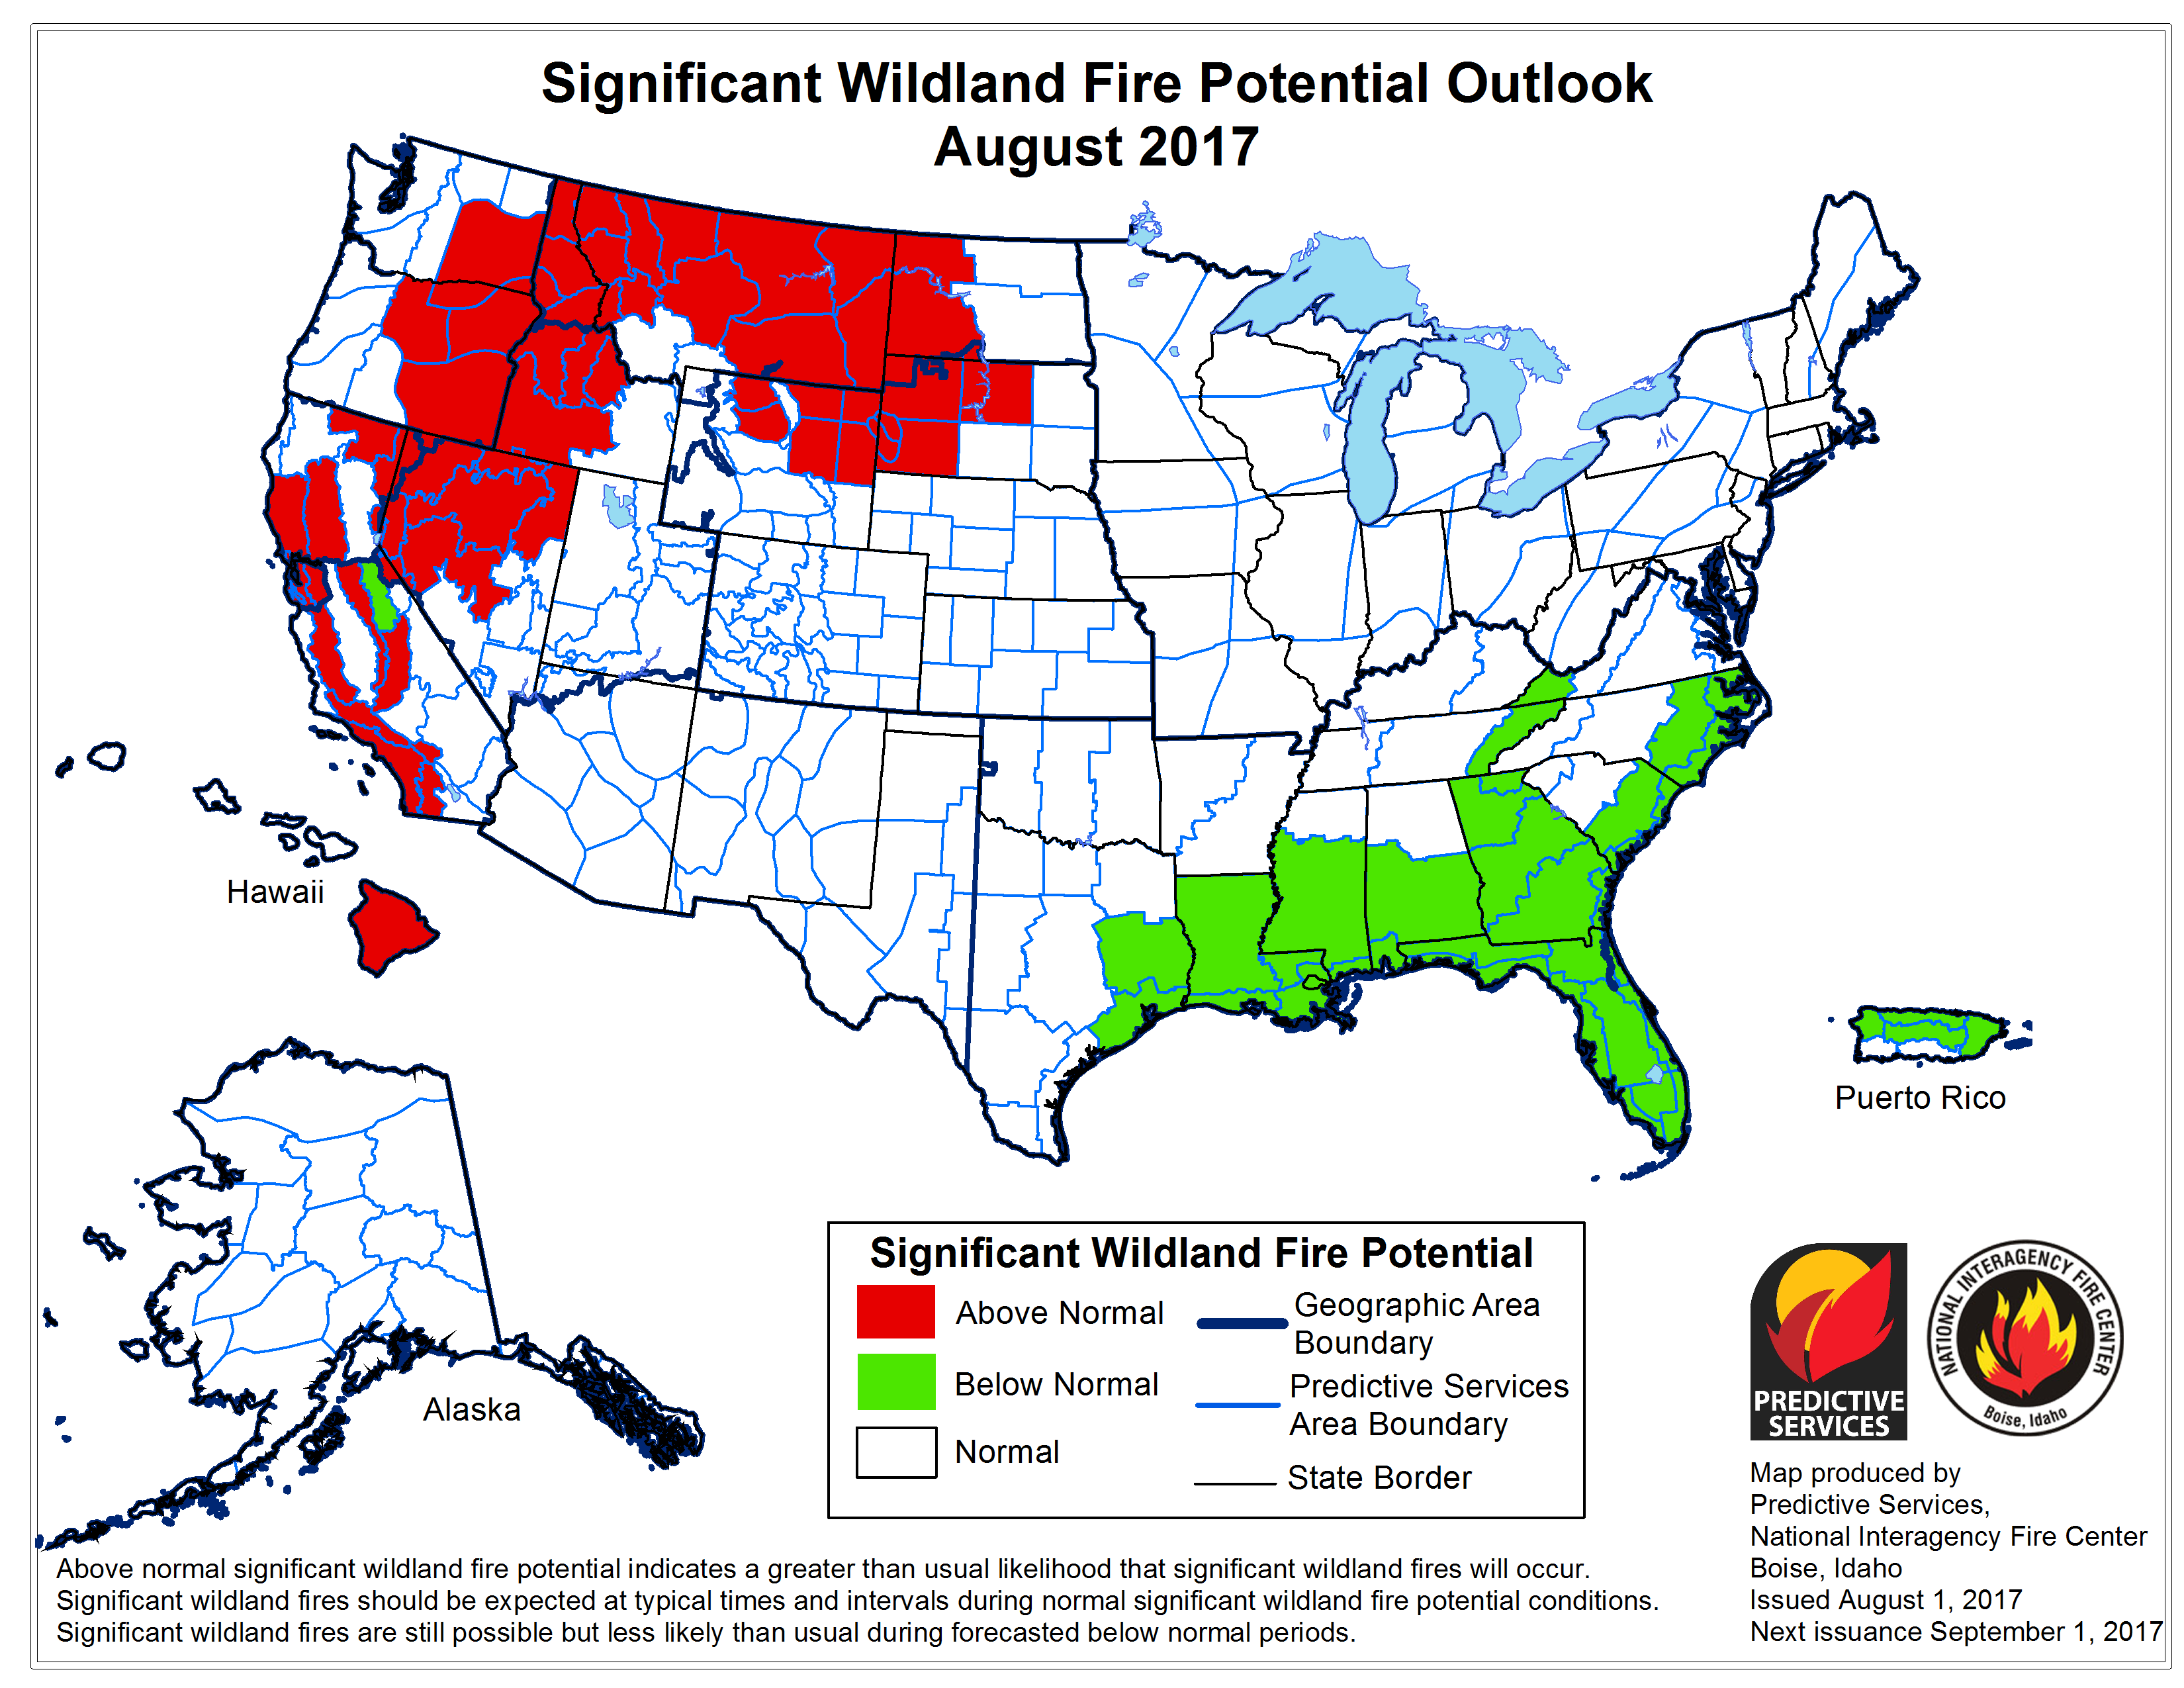 Significant Wildland Fire Potential Outlook for August 2017